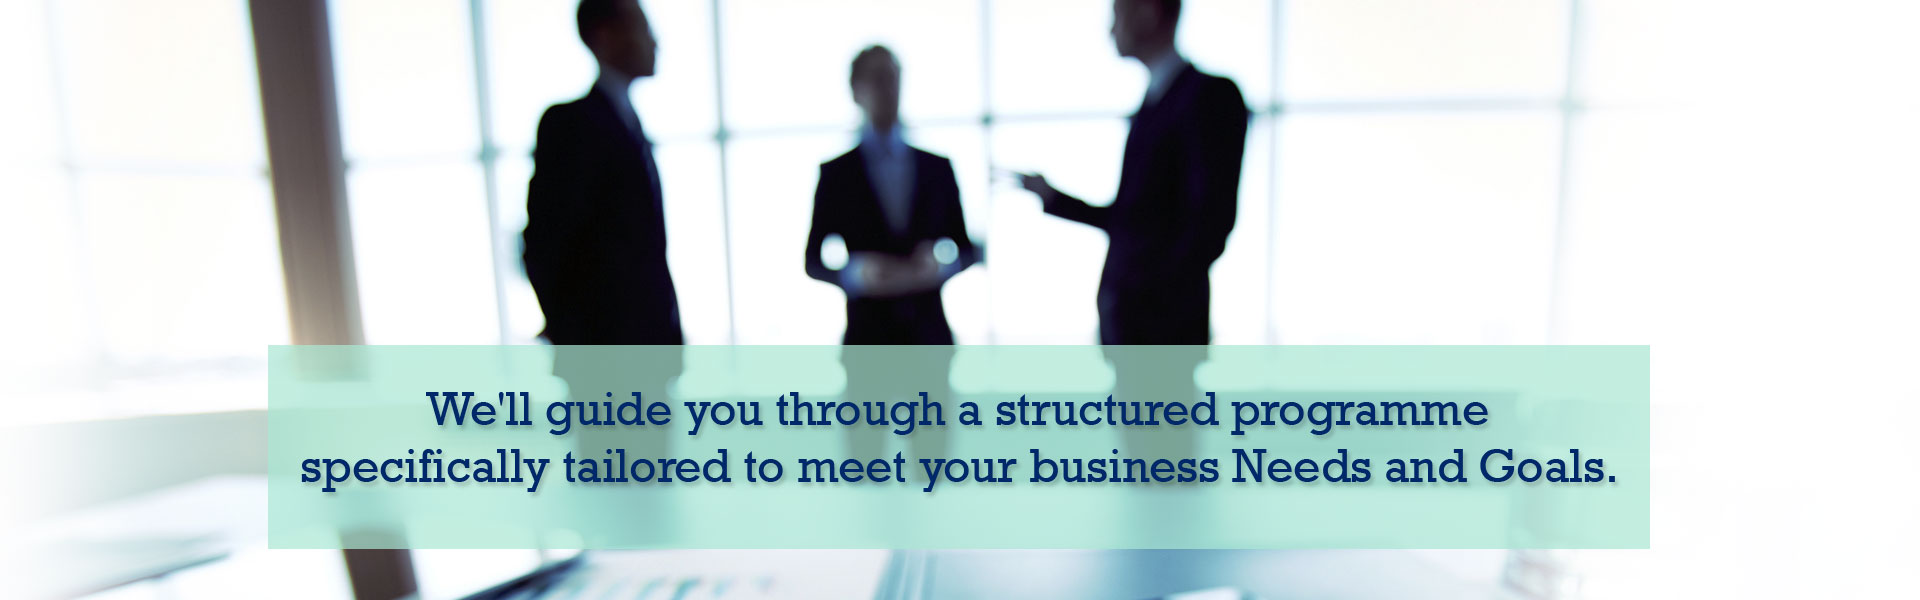 We'll guide you through a structured programme specifically tailored to meet your business Needs and Goals.